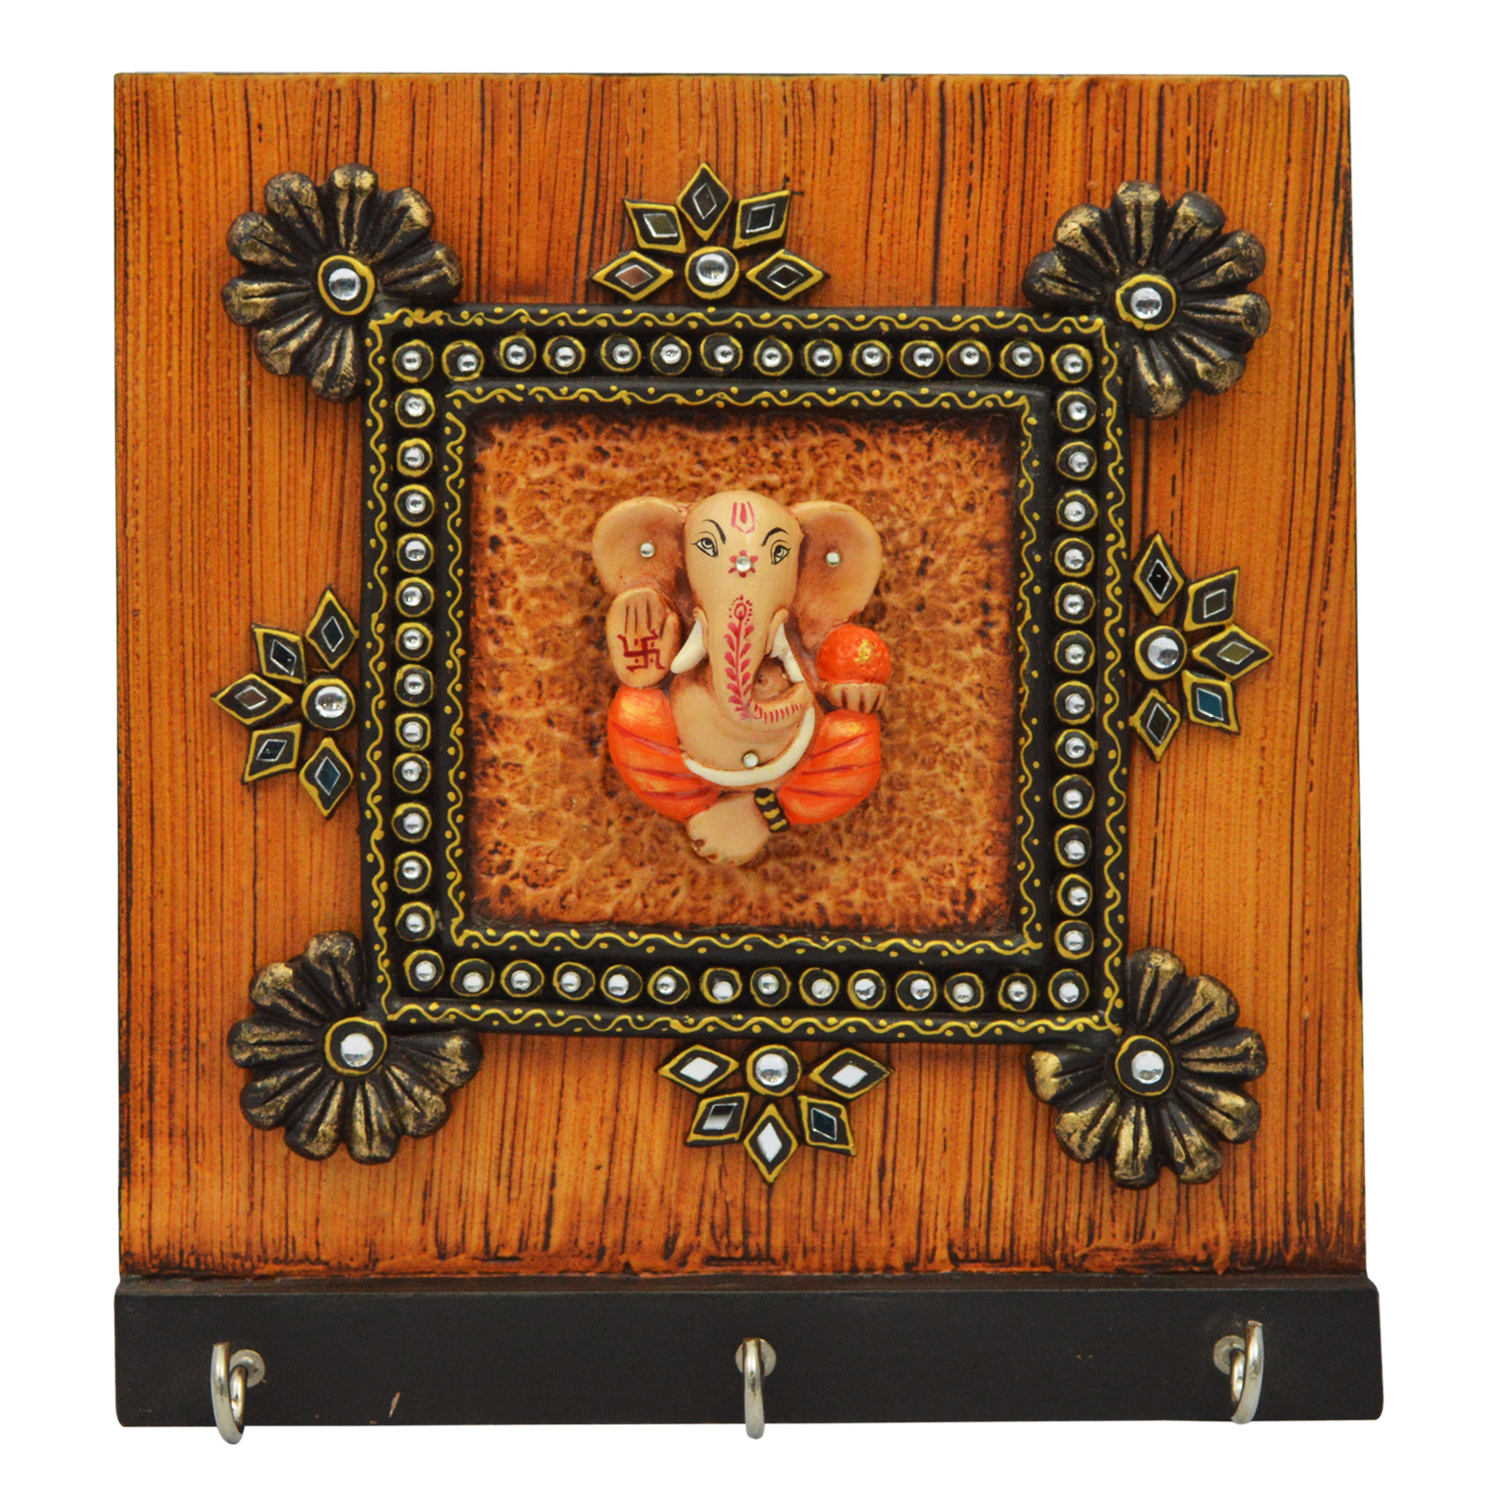 Decorative Lord Ganesh